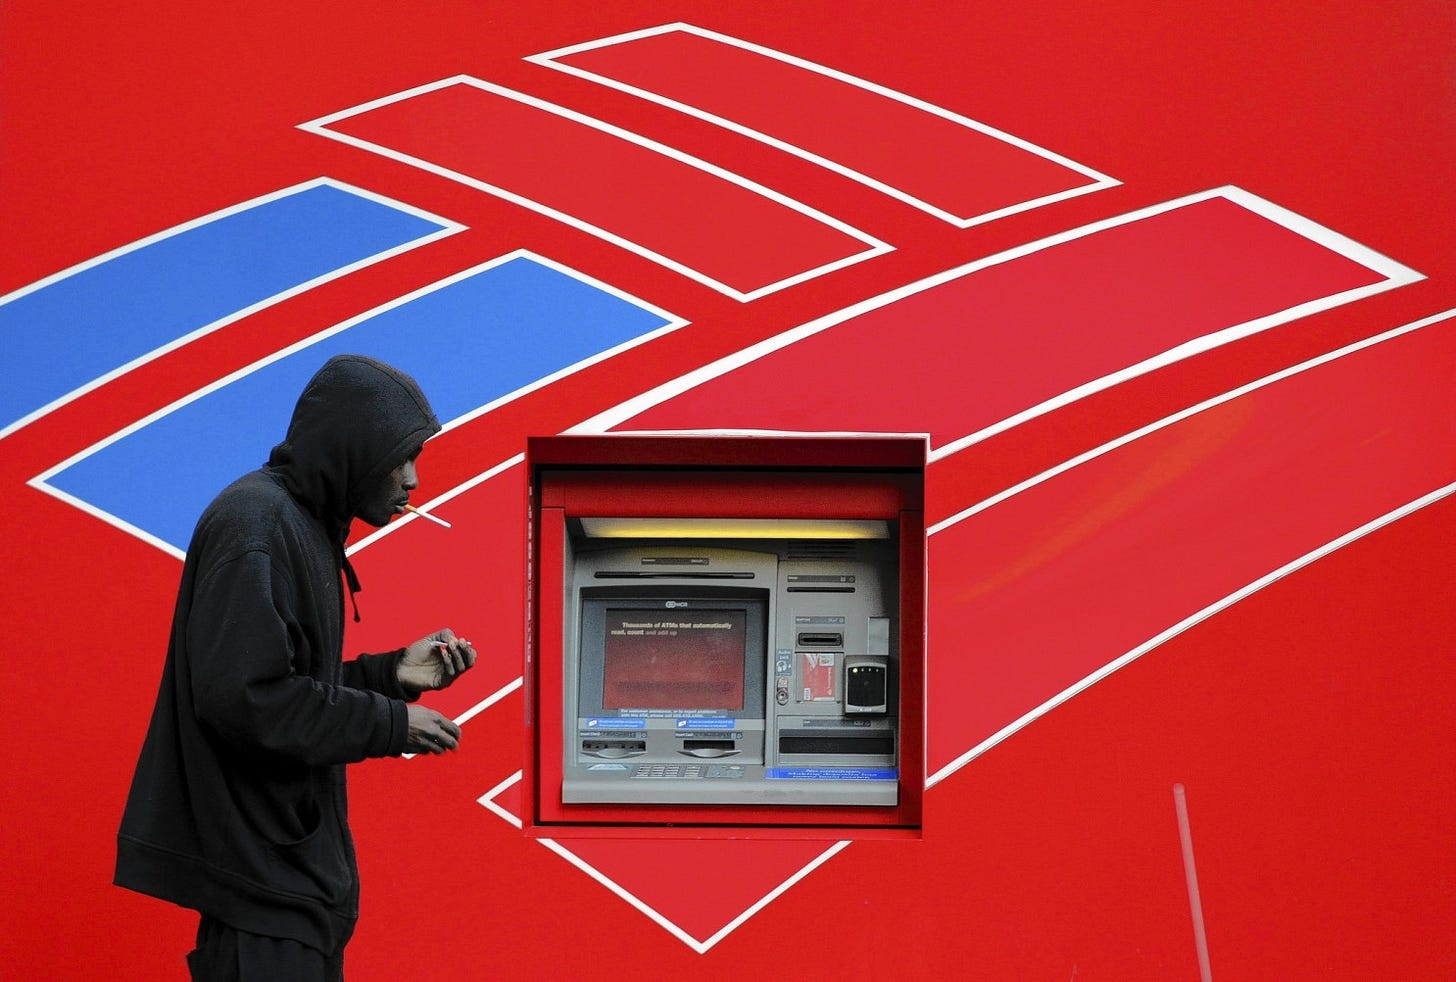 BofA ordered to pay $1.3 billion over Countrywide lending program - Los  Angeles Times